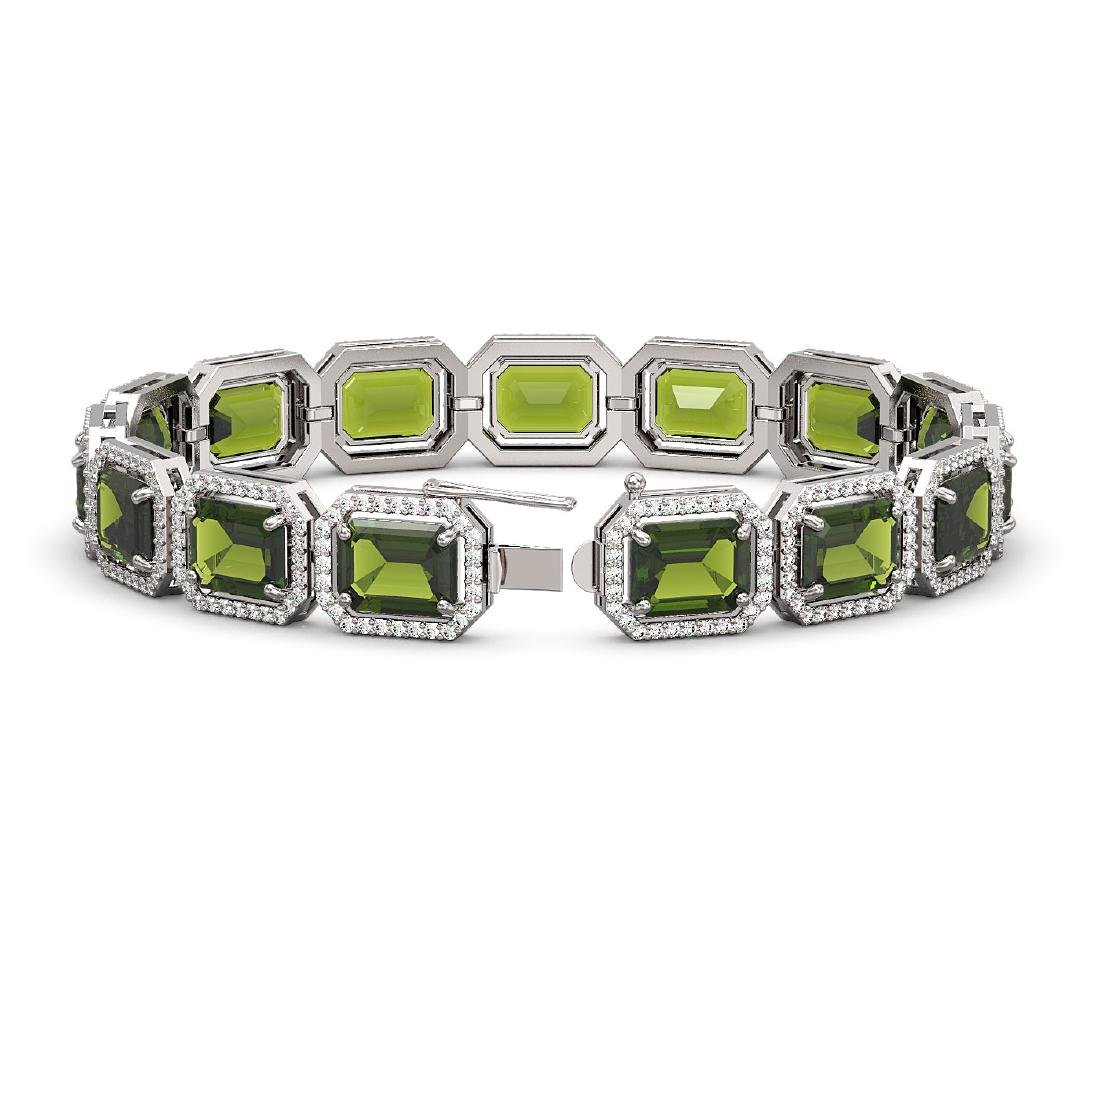 36.51 CTW Tourmaline & Diamond Halo Bracelet 10K White - 2